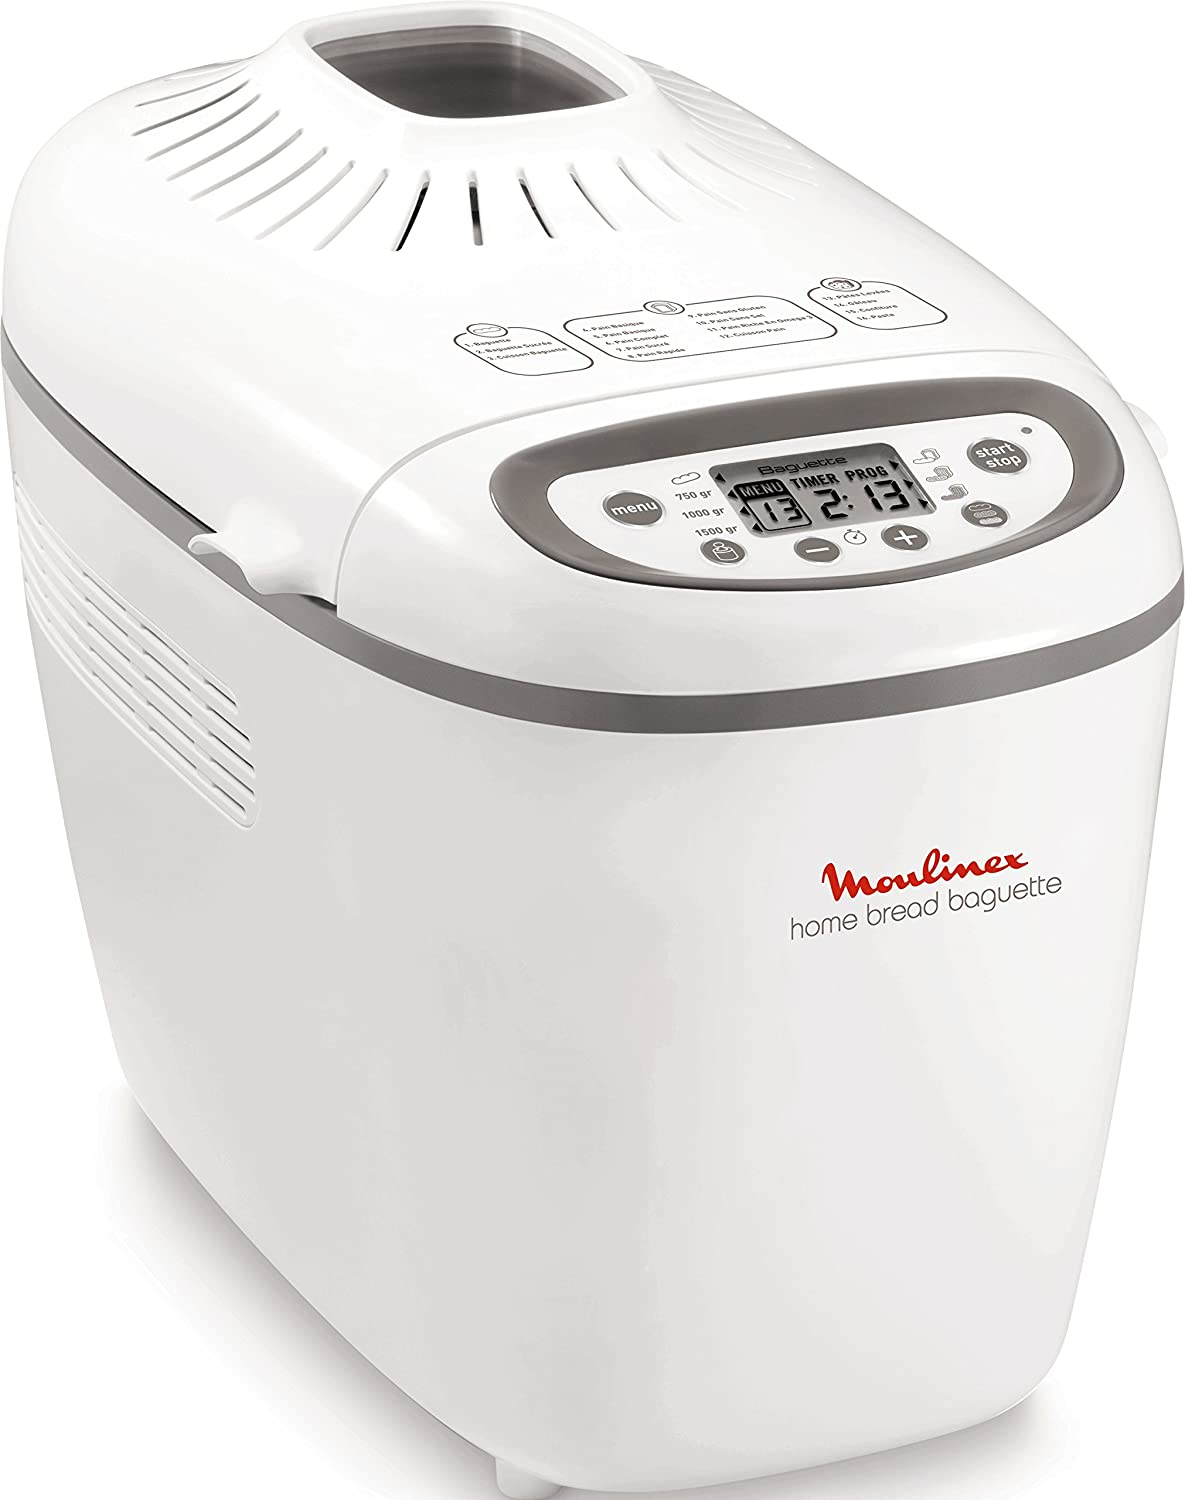 Moulinex bread maker ow6101